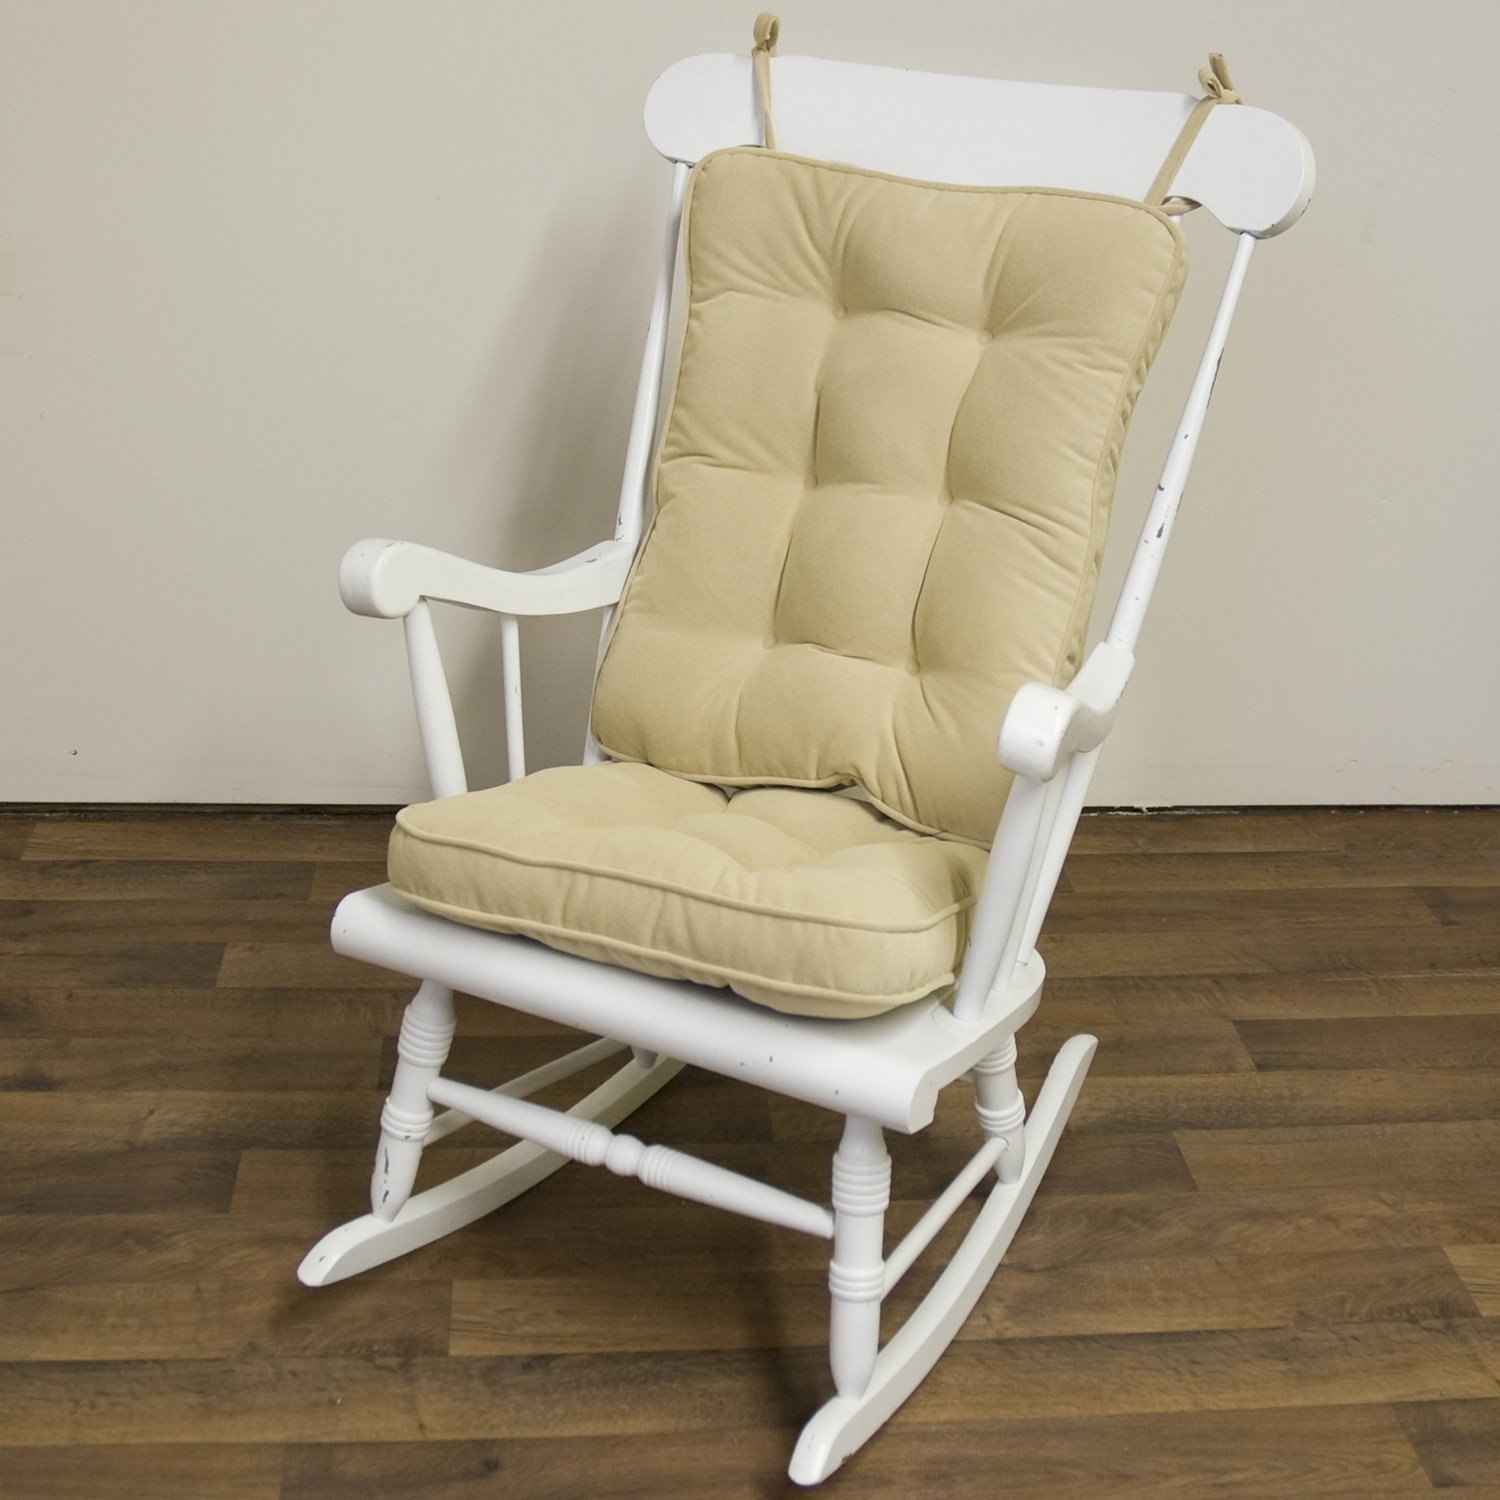 Piece Rocking Chair Cushion Set Cream Color Seat Back Nylon Pertaining To Rocking Chairs With Lumbar Support (View 6 of 15)